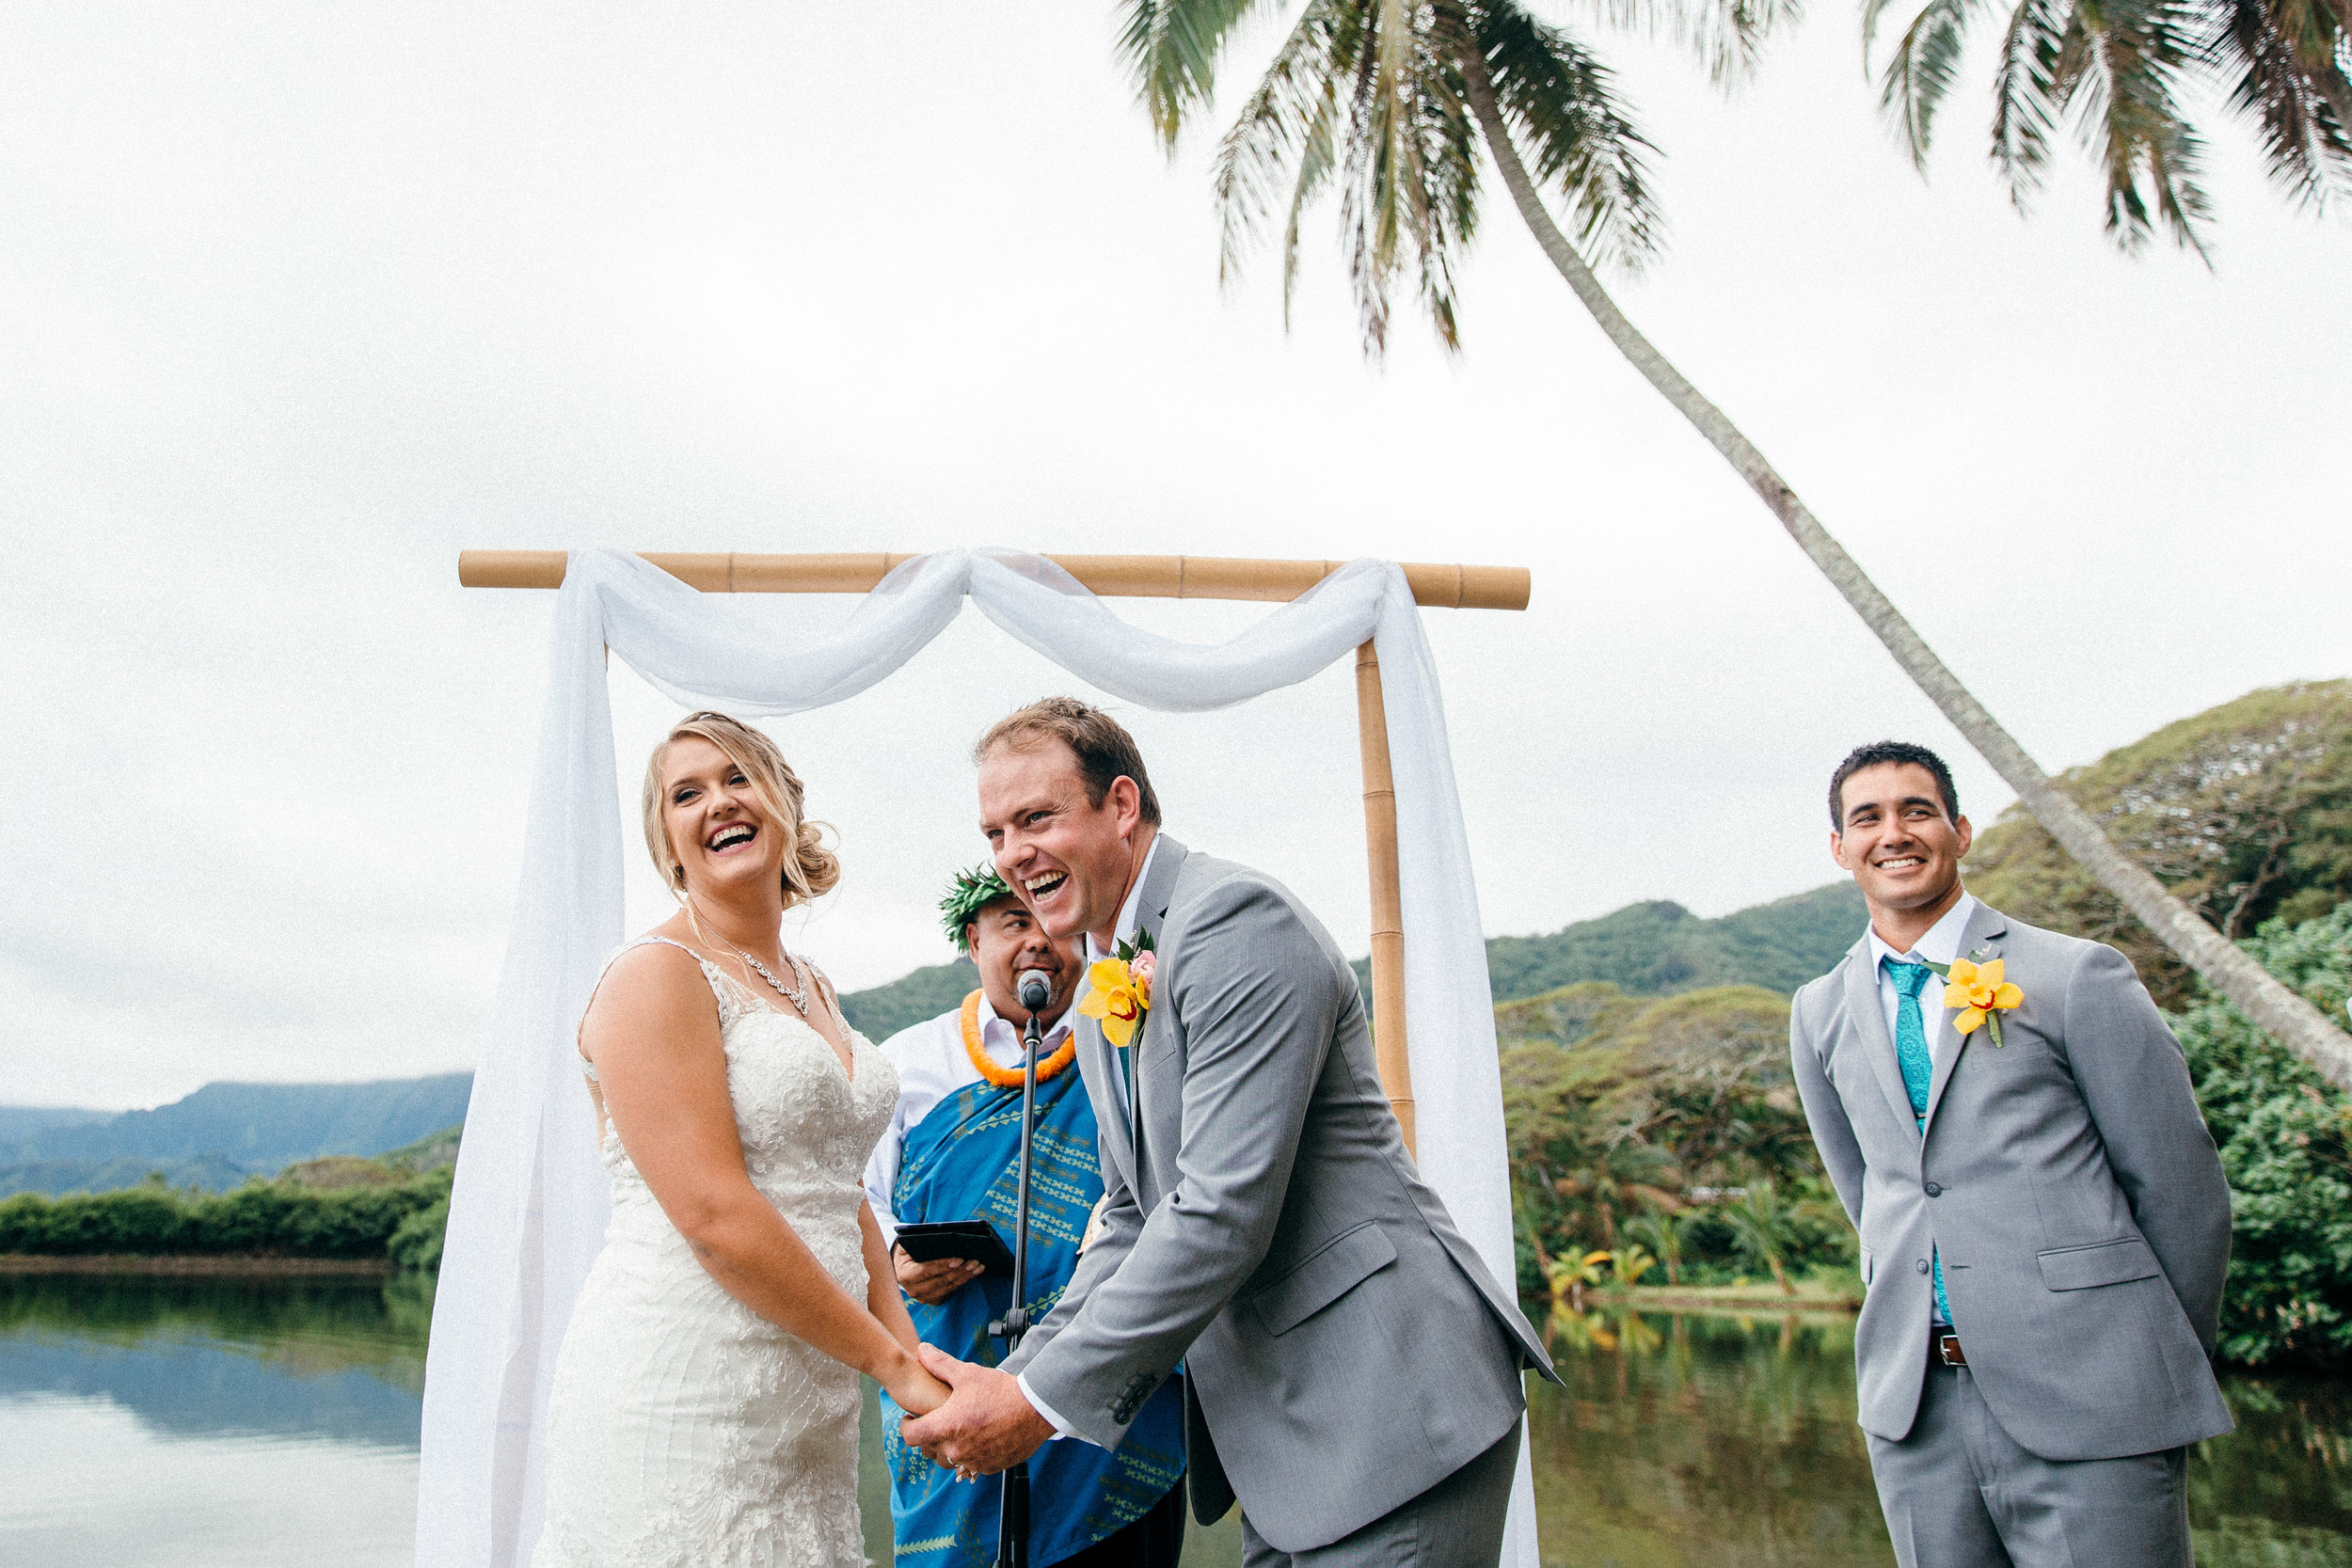 Dani & Mat's joyous and eventful traditional Hawaiian ceremony at Molii Gardens in Kualoa Ranch